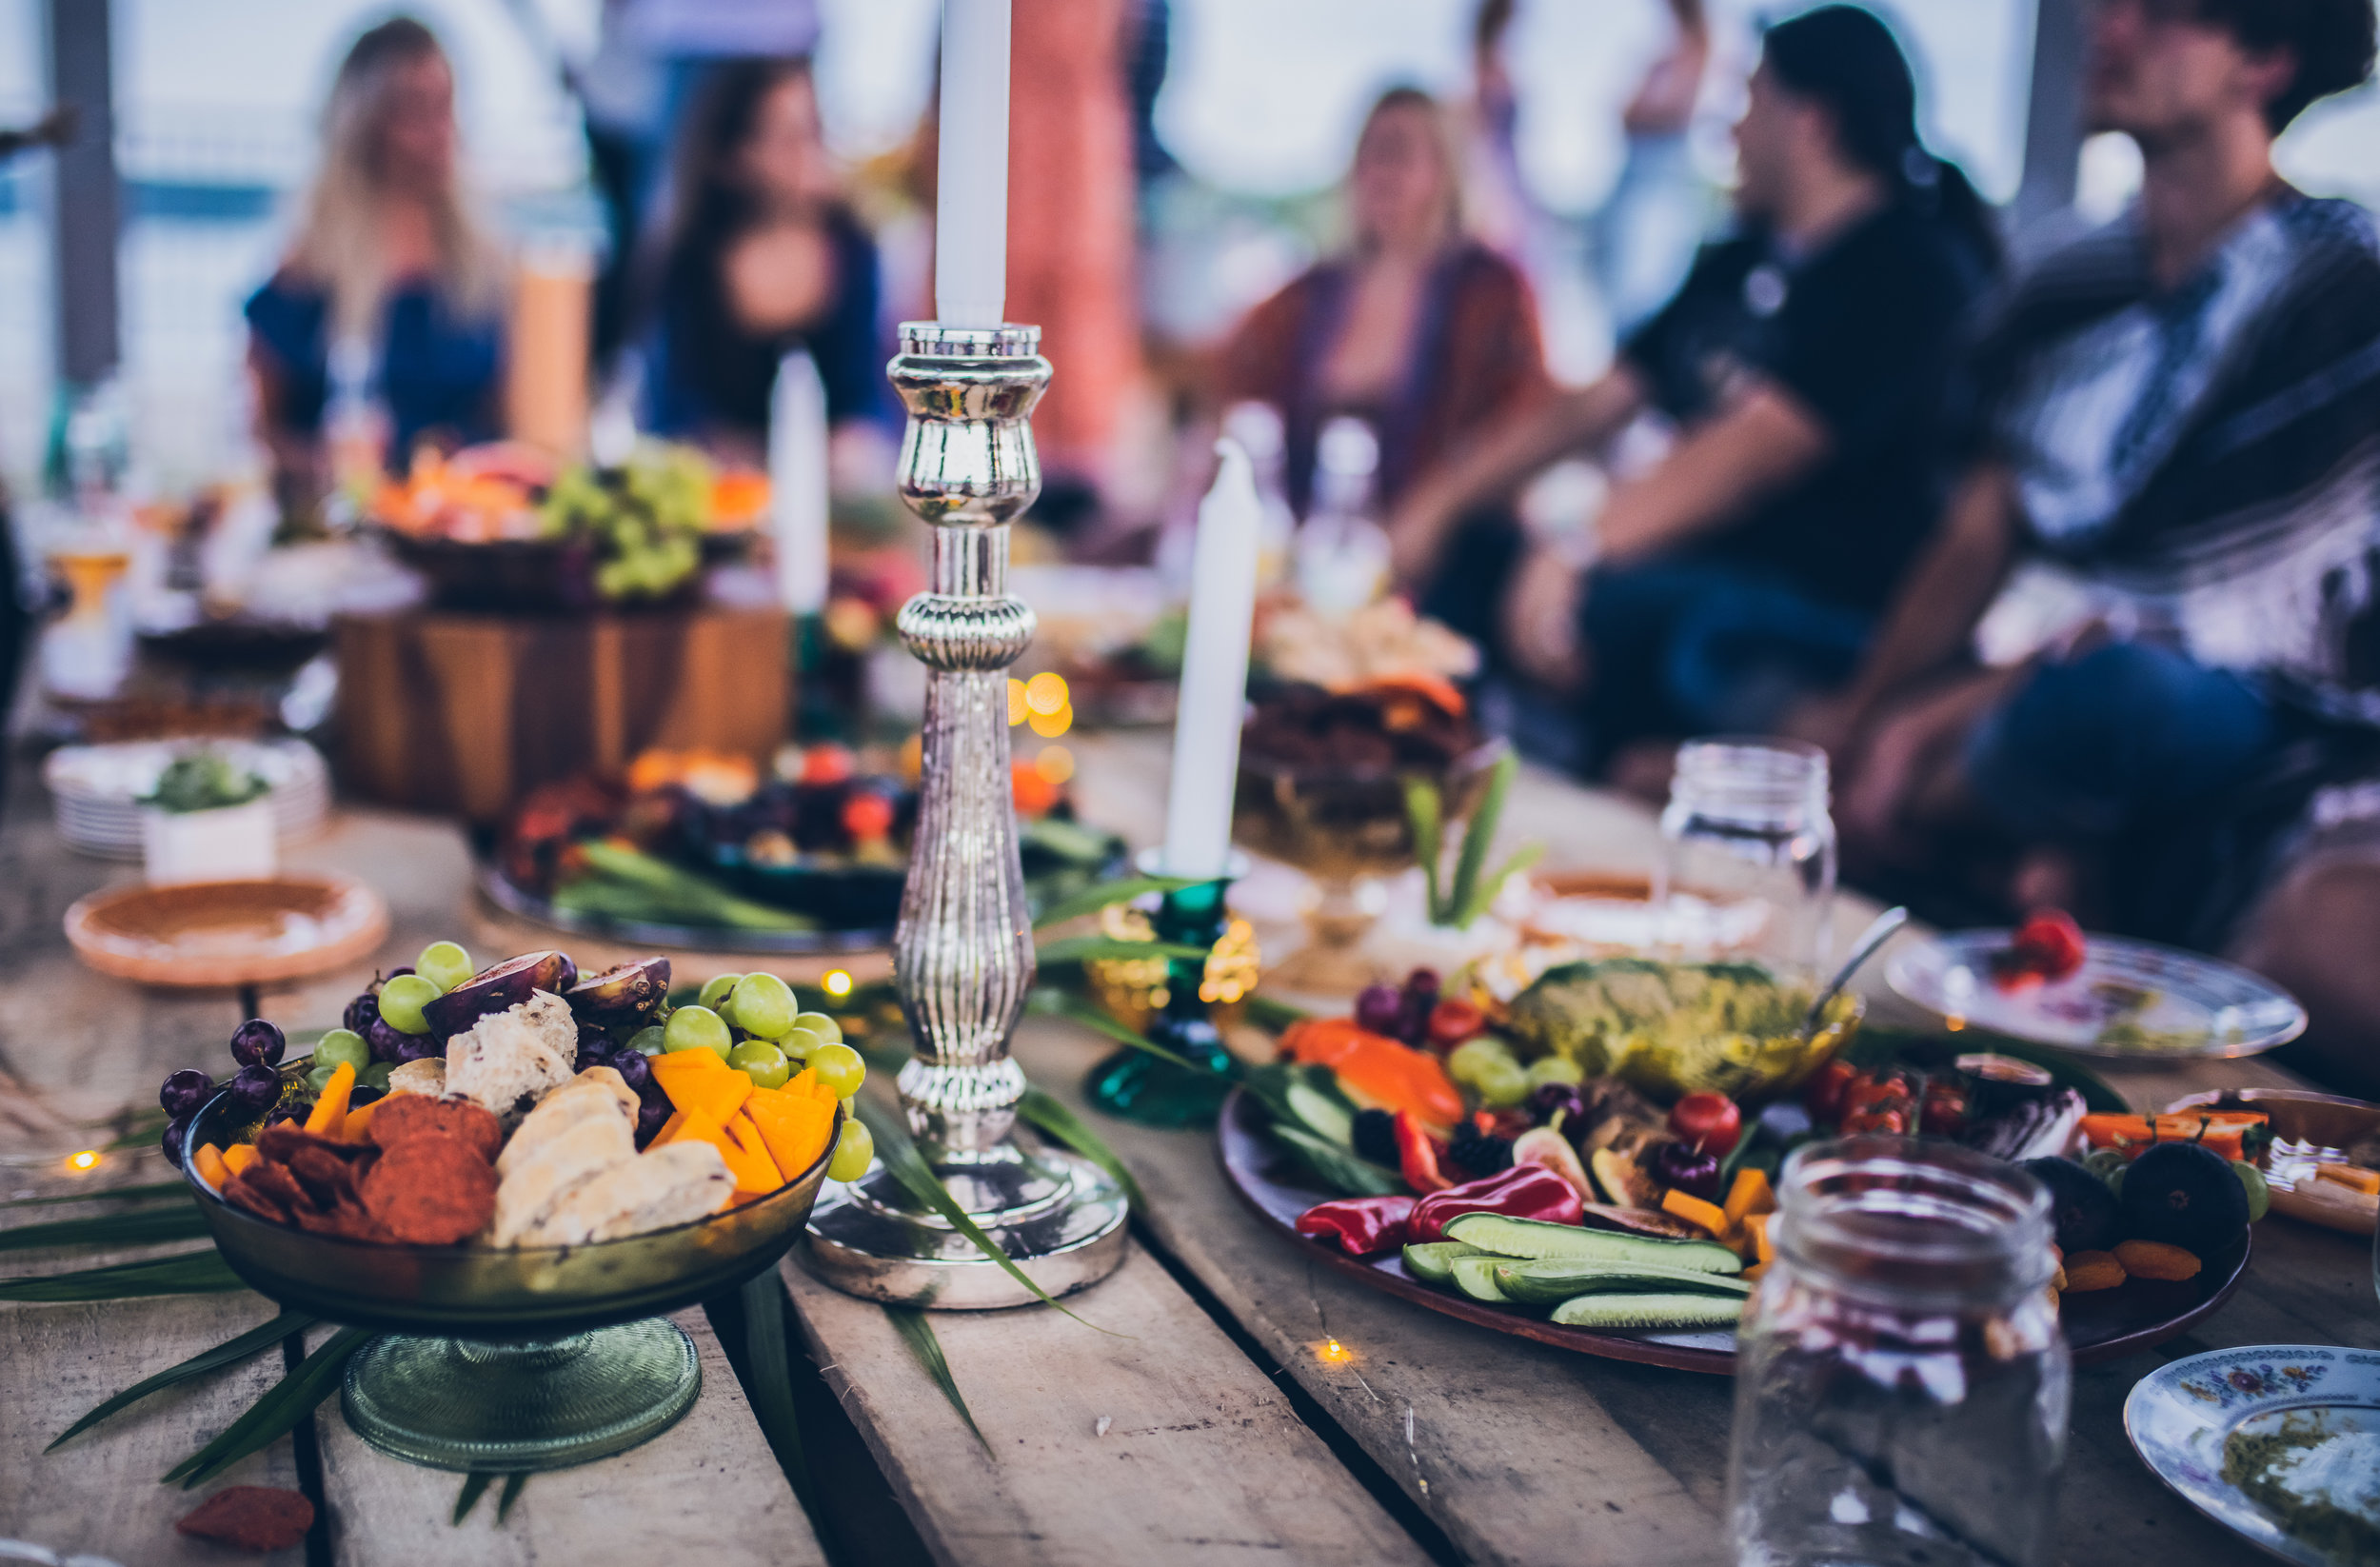 Our first gathering! Featuring a spread of all of our platters and an intimate picnic set up.